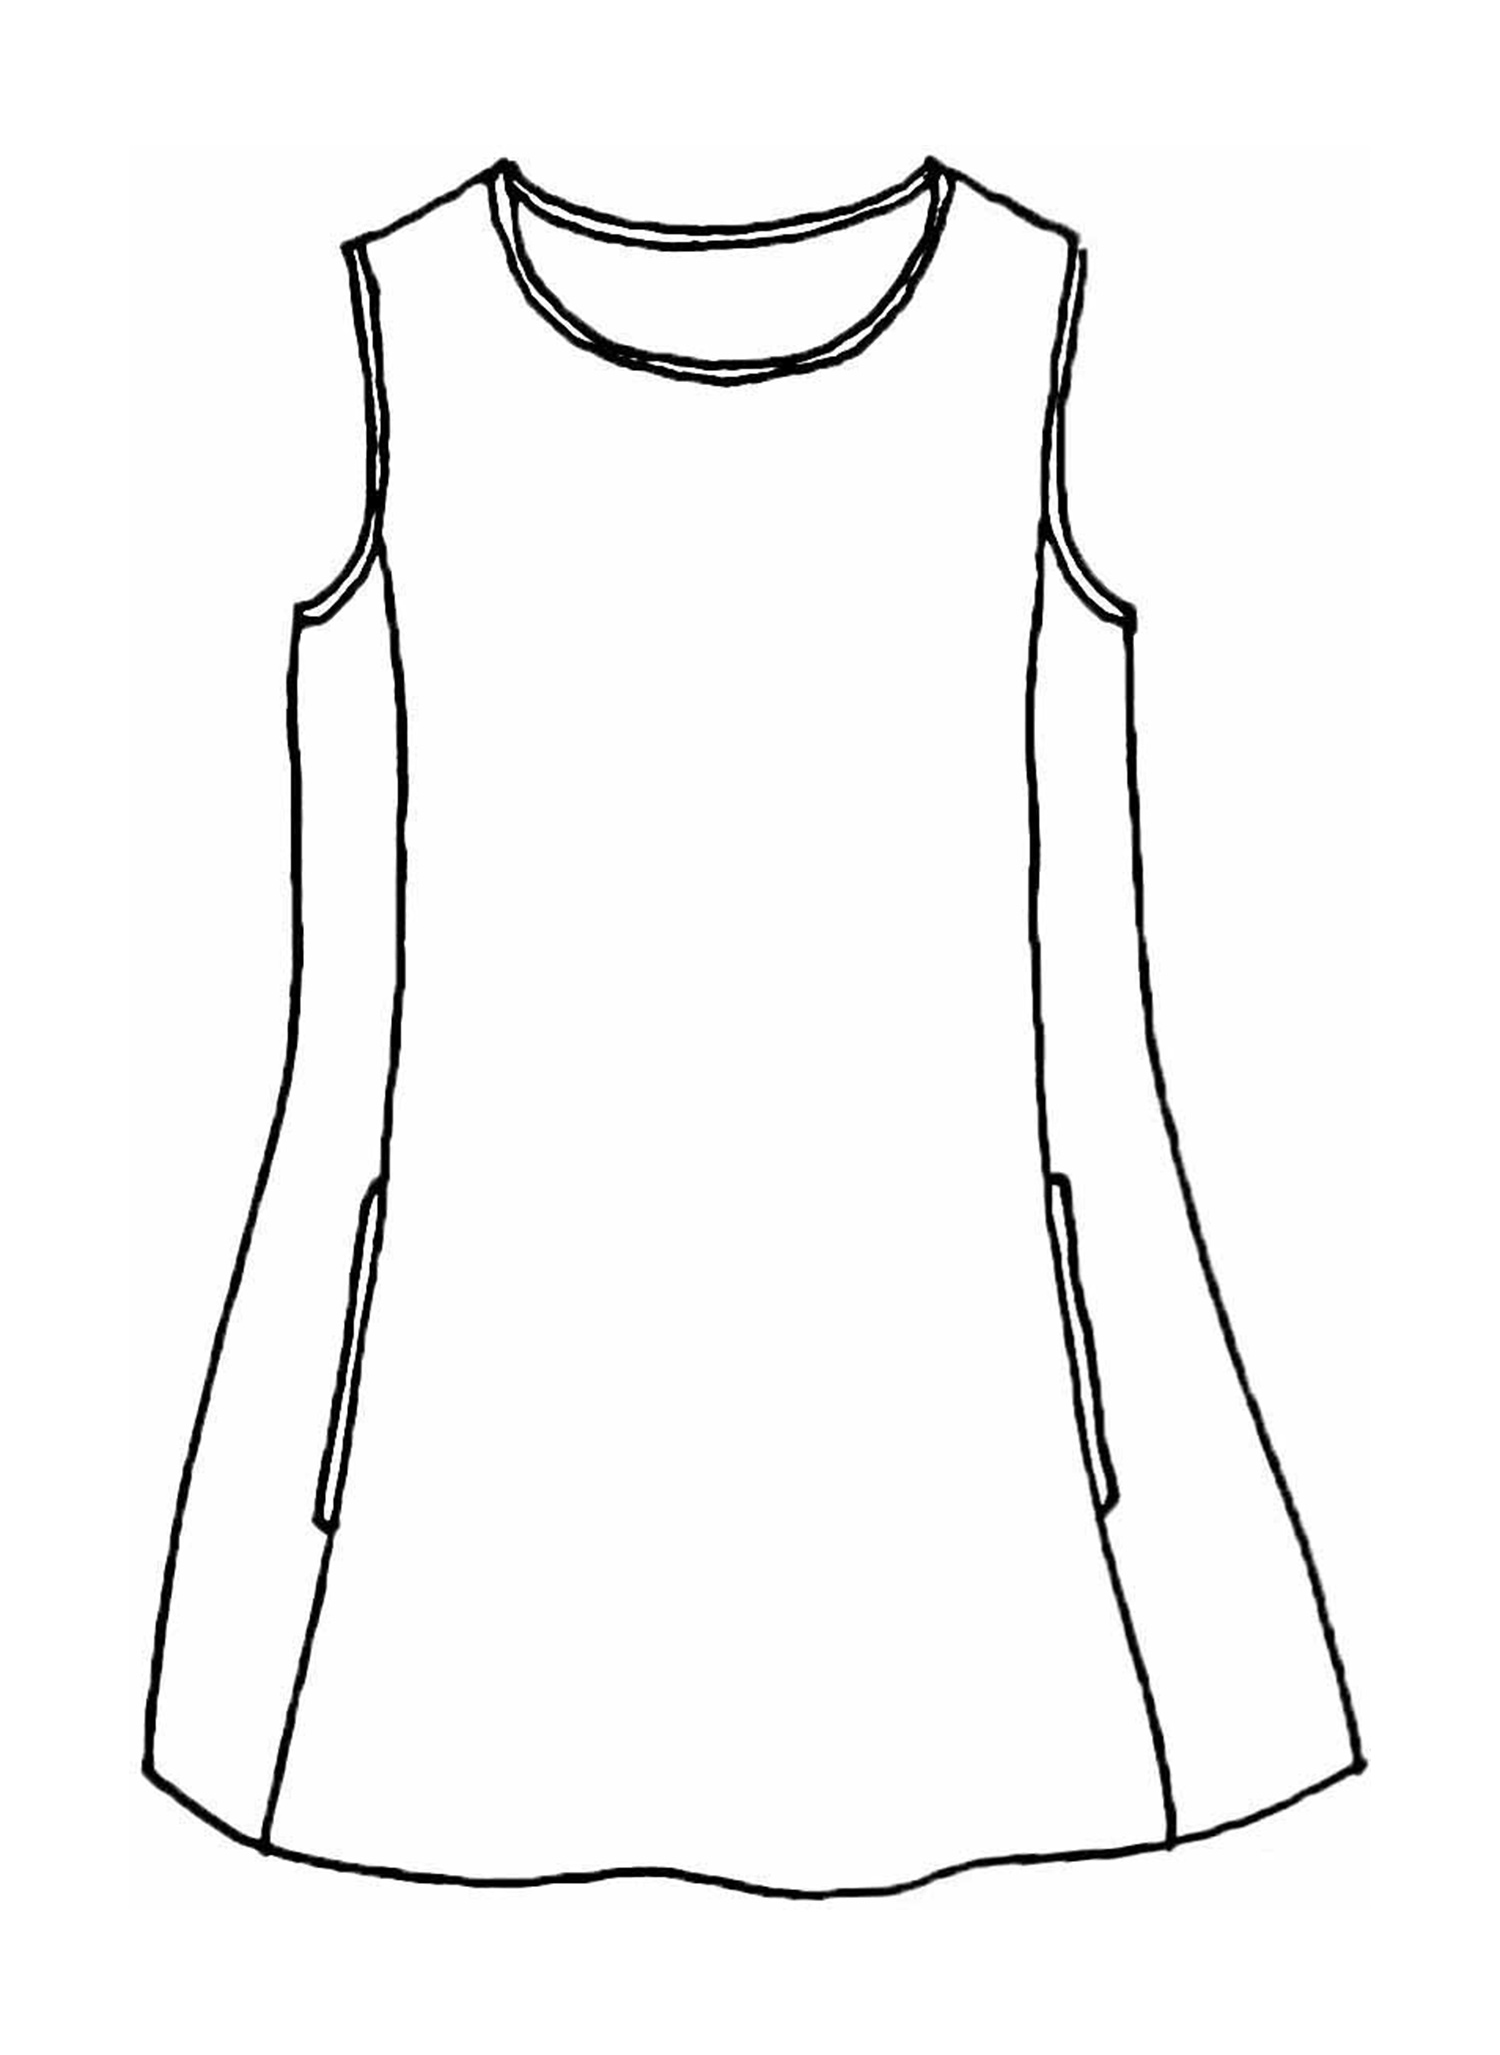 Side Pocket Tunic sketch image